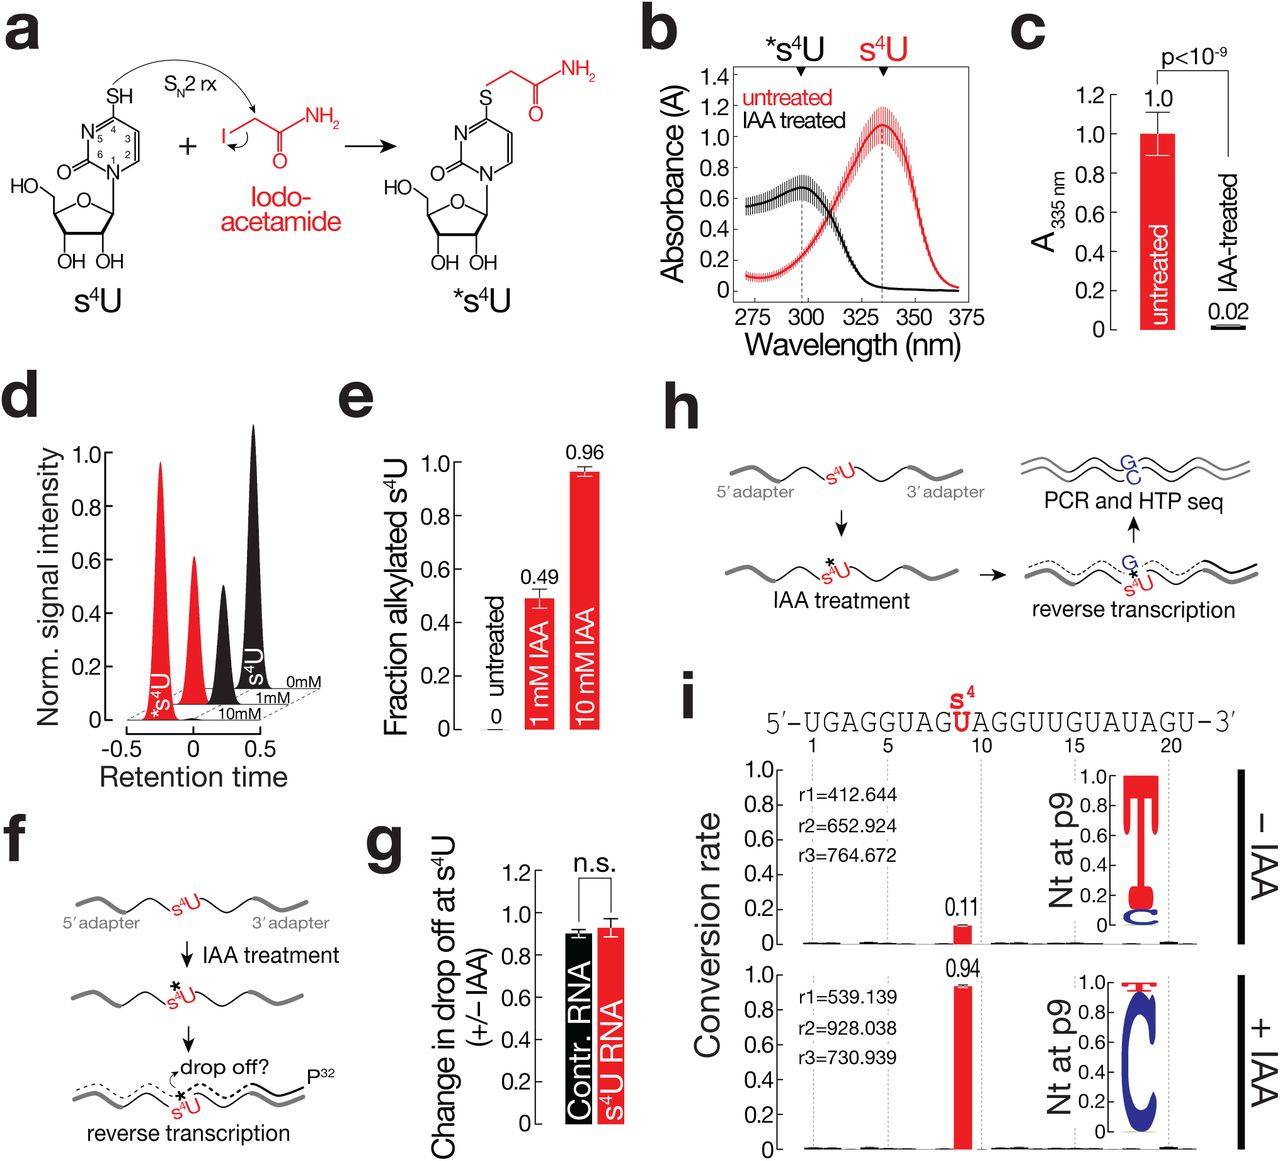 Thiol-linked alkylation for the metabolic sequencing of RNA